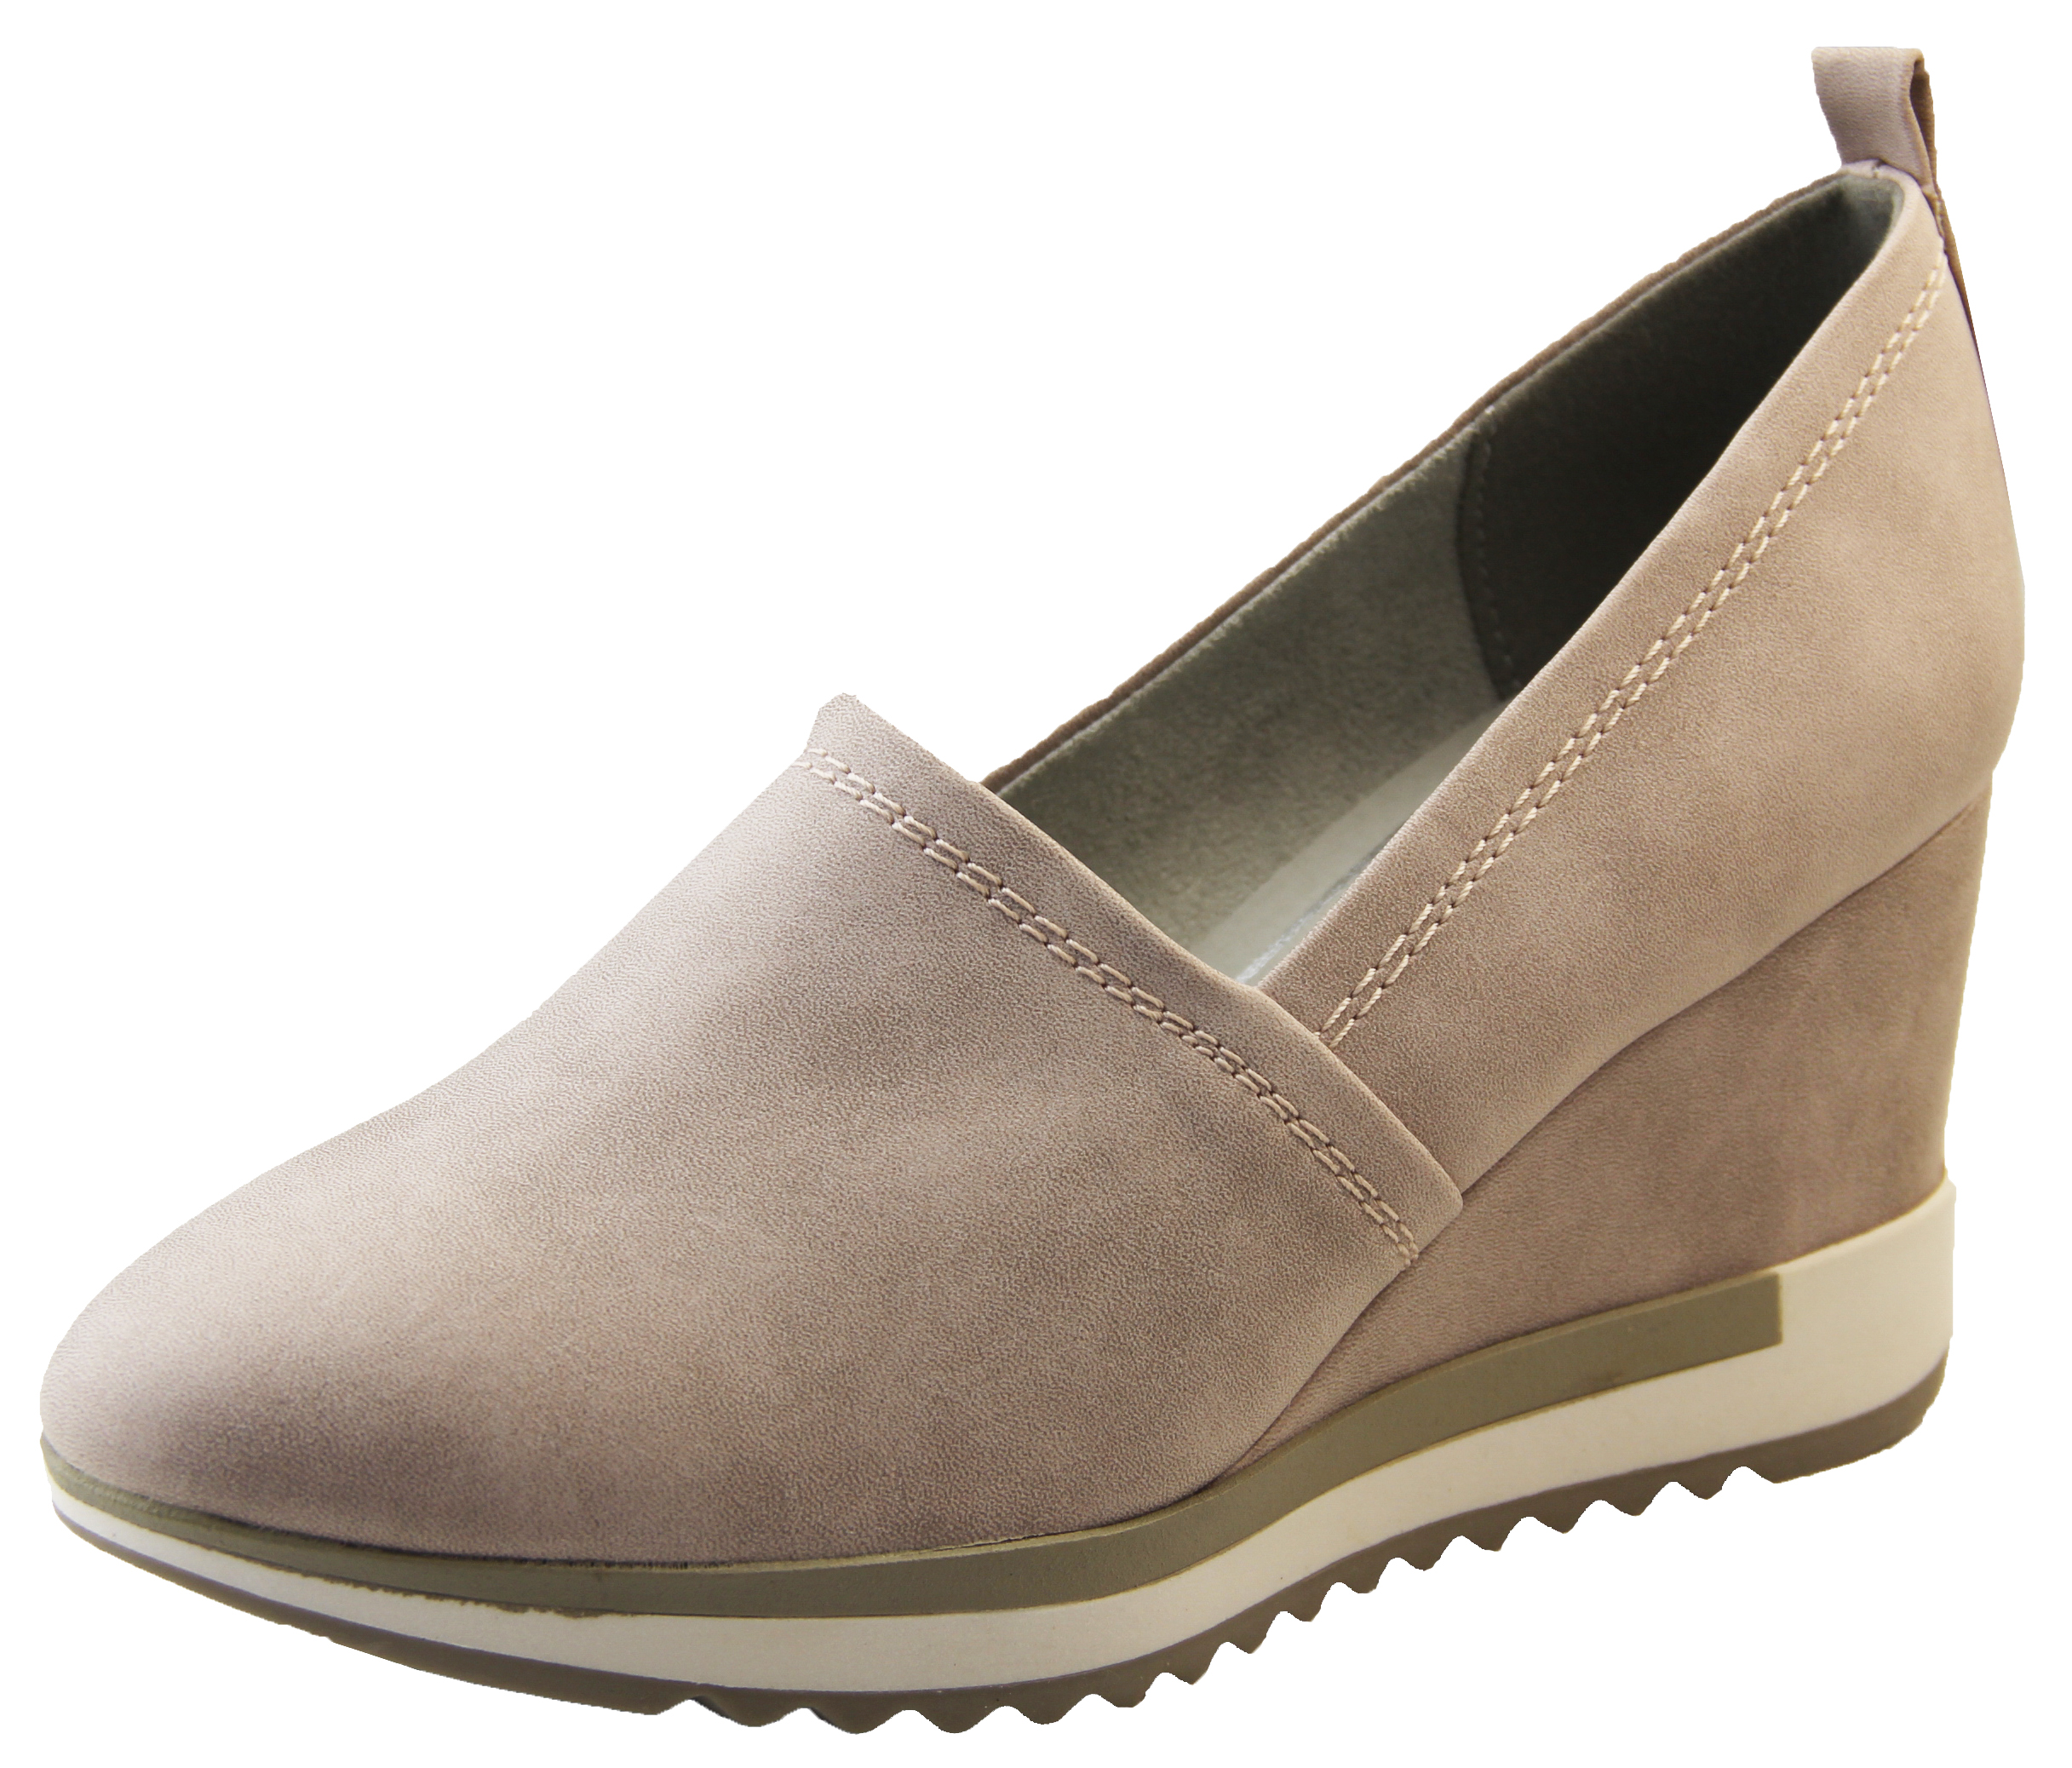 f6ee791863847 Ladies Stunning MARCO TOZZI Fashion Wedge Heel Sandals Shoes | Womens,  Mens, Kids Shoes | Heels, Trainers & Boots | Footwear Studio